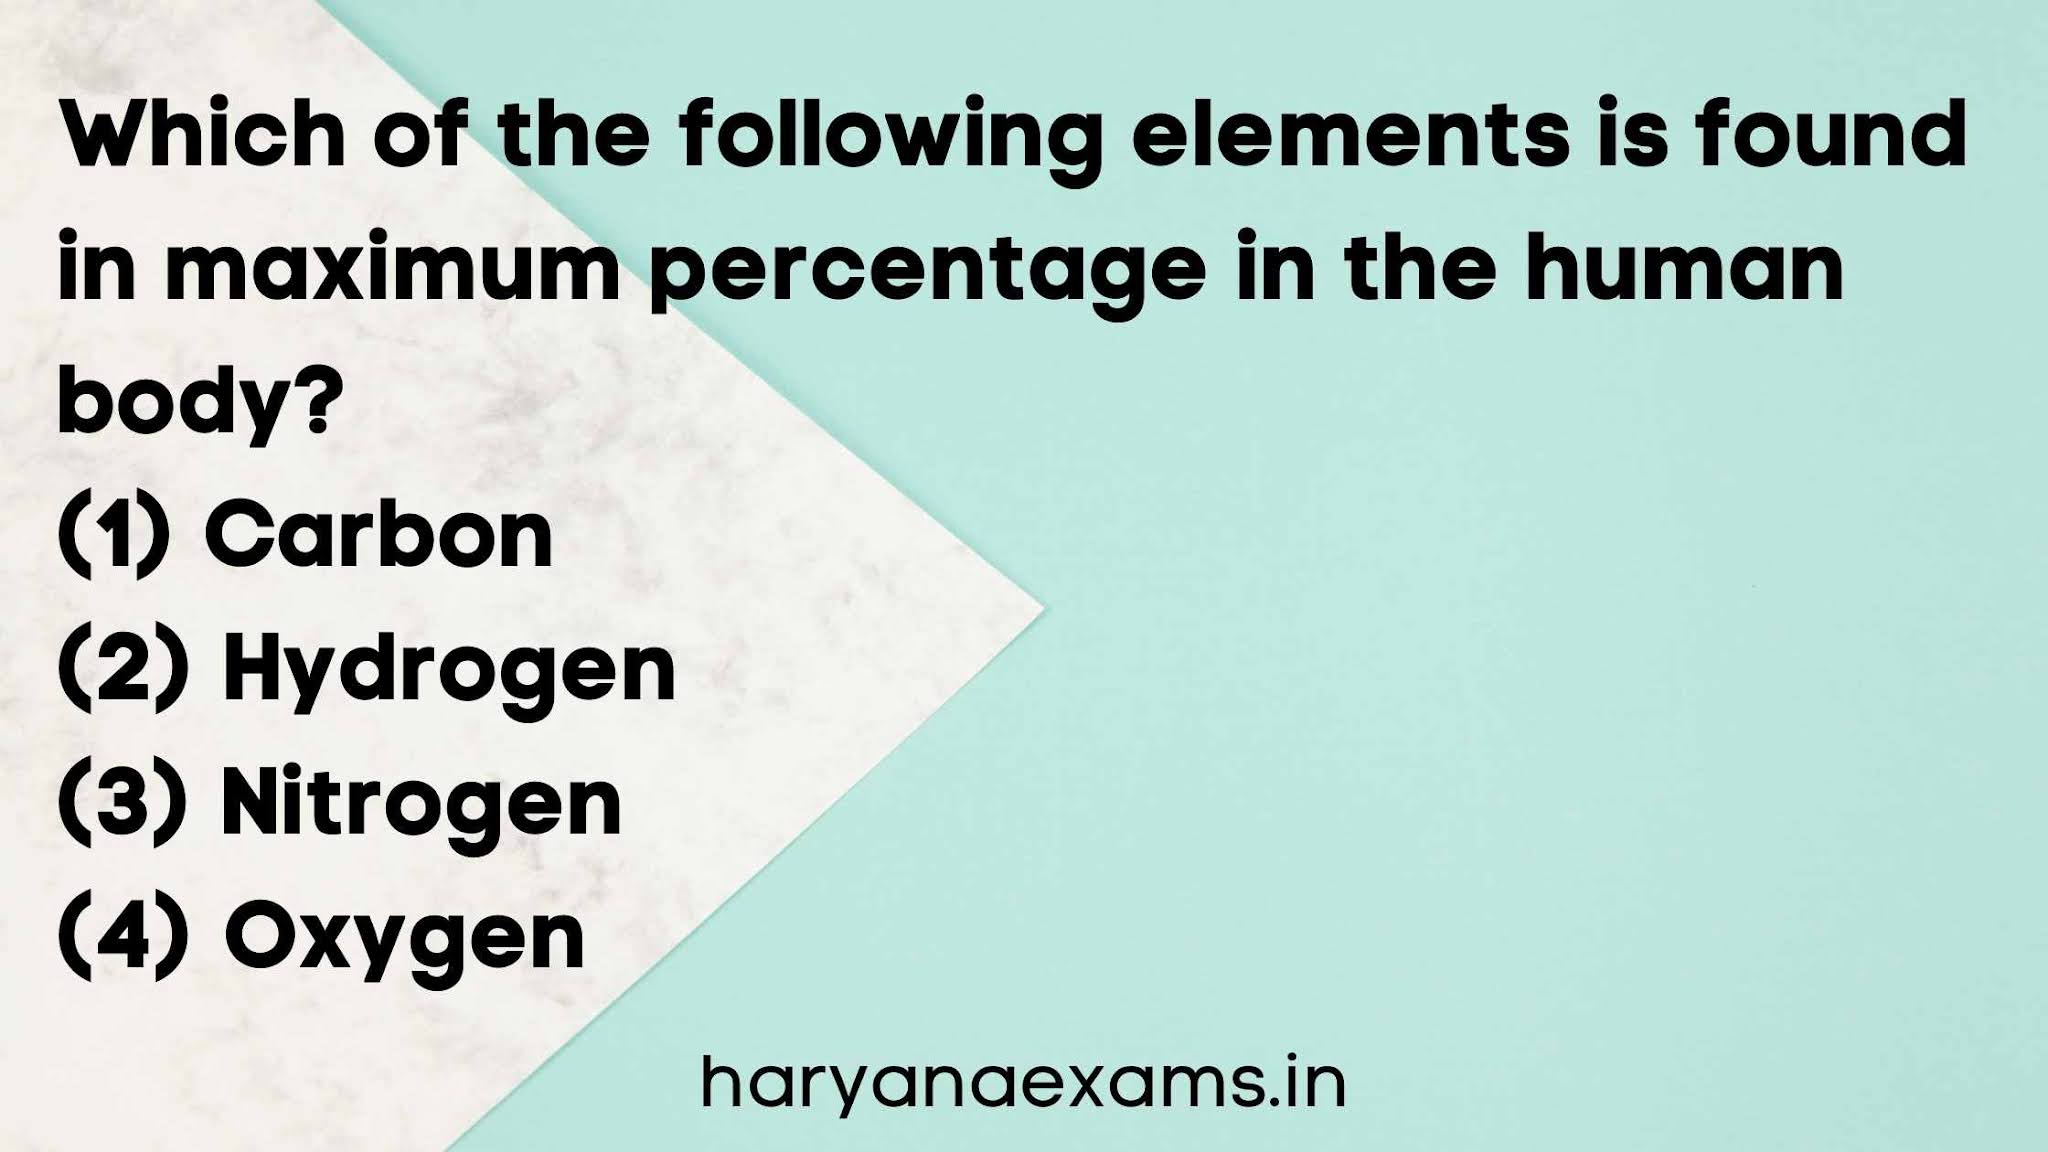 Which of the following elements is found in maximum percentage in the human body?   (1) Carbon   (2) Hydrogen   (3) Nitrogen   (4) Oxygen